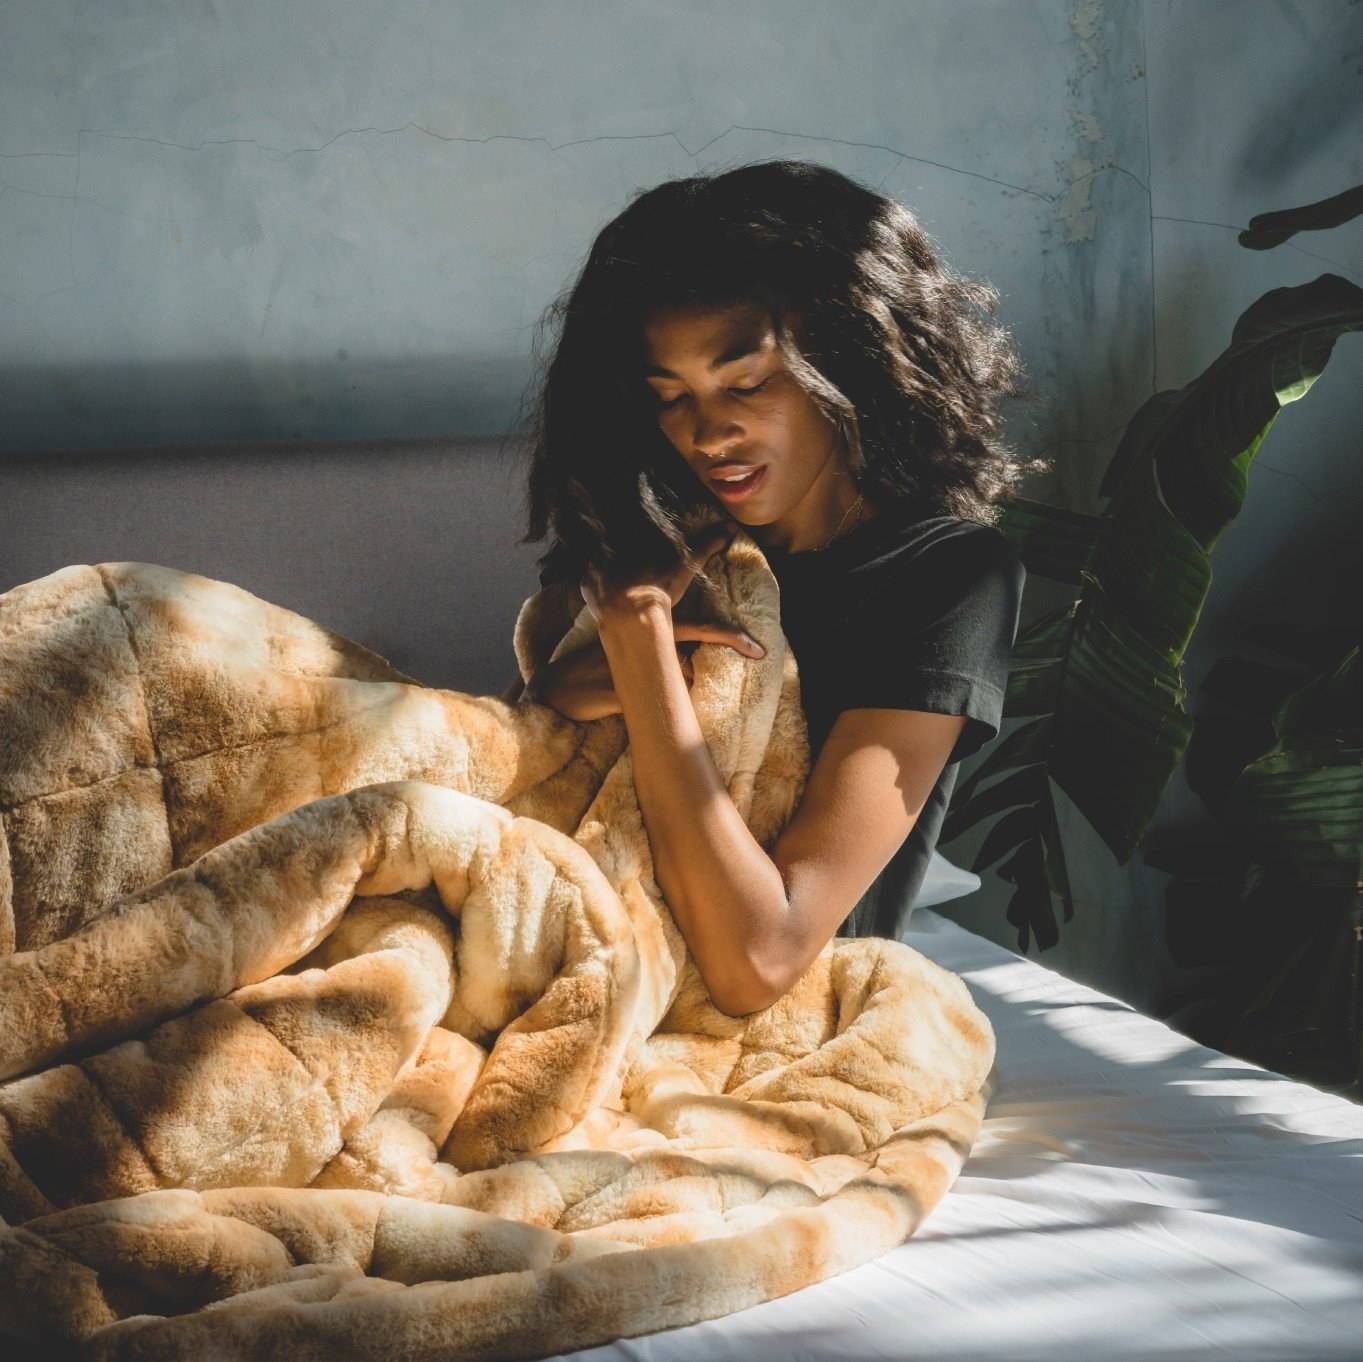 model sitting on a bed embracing the weighted blanket